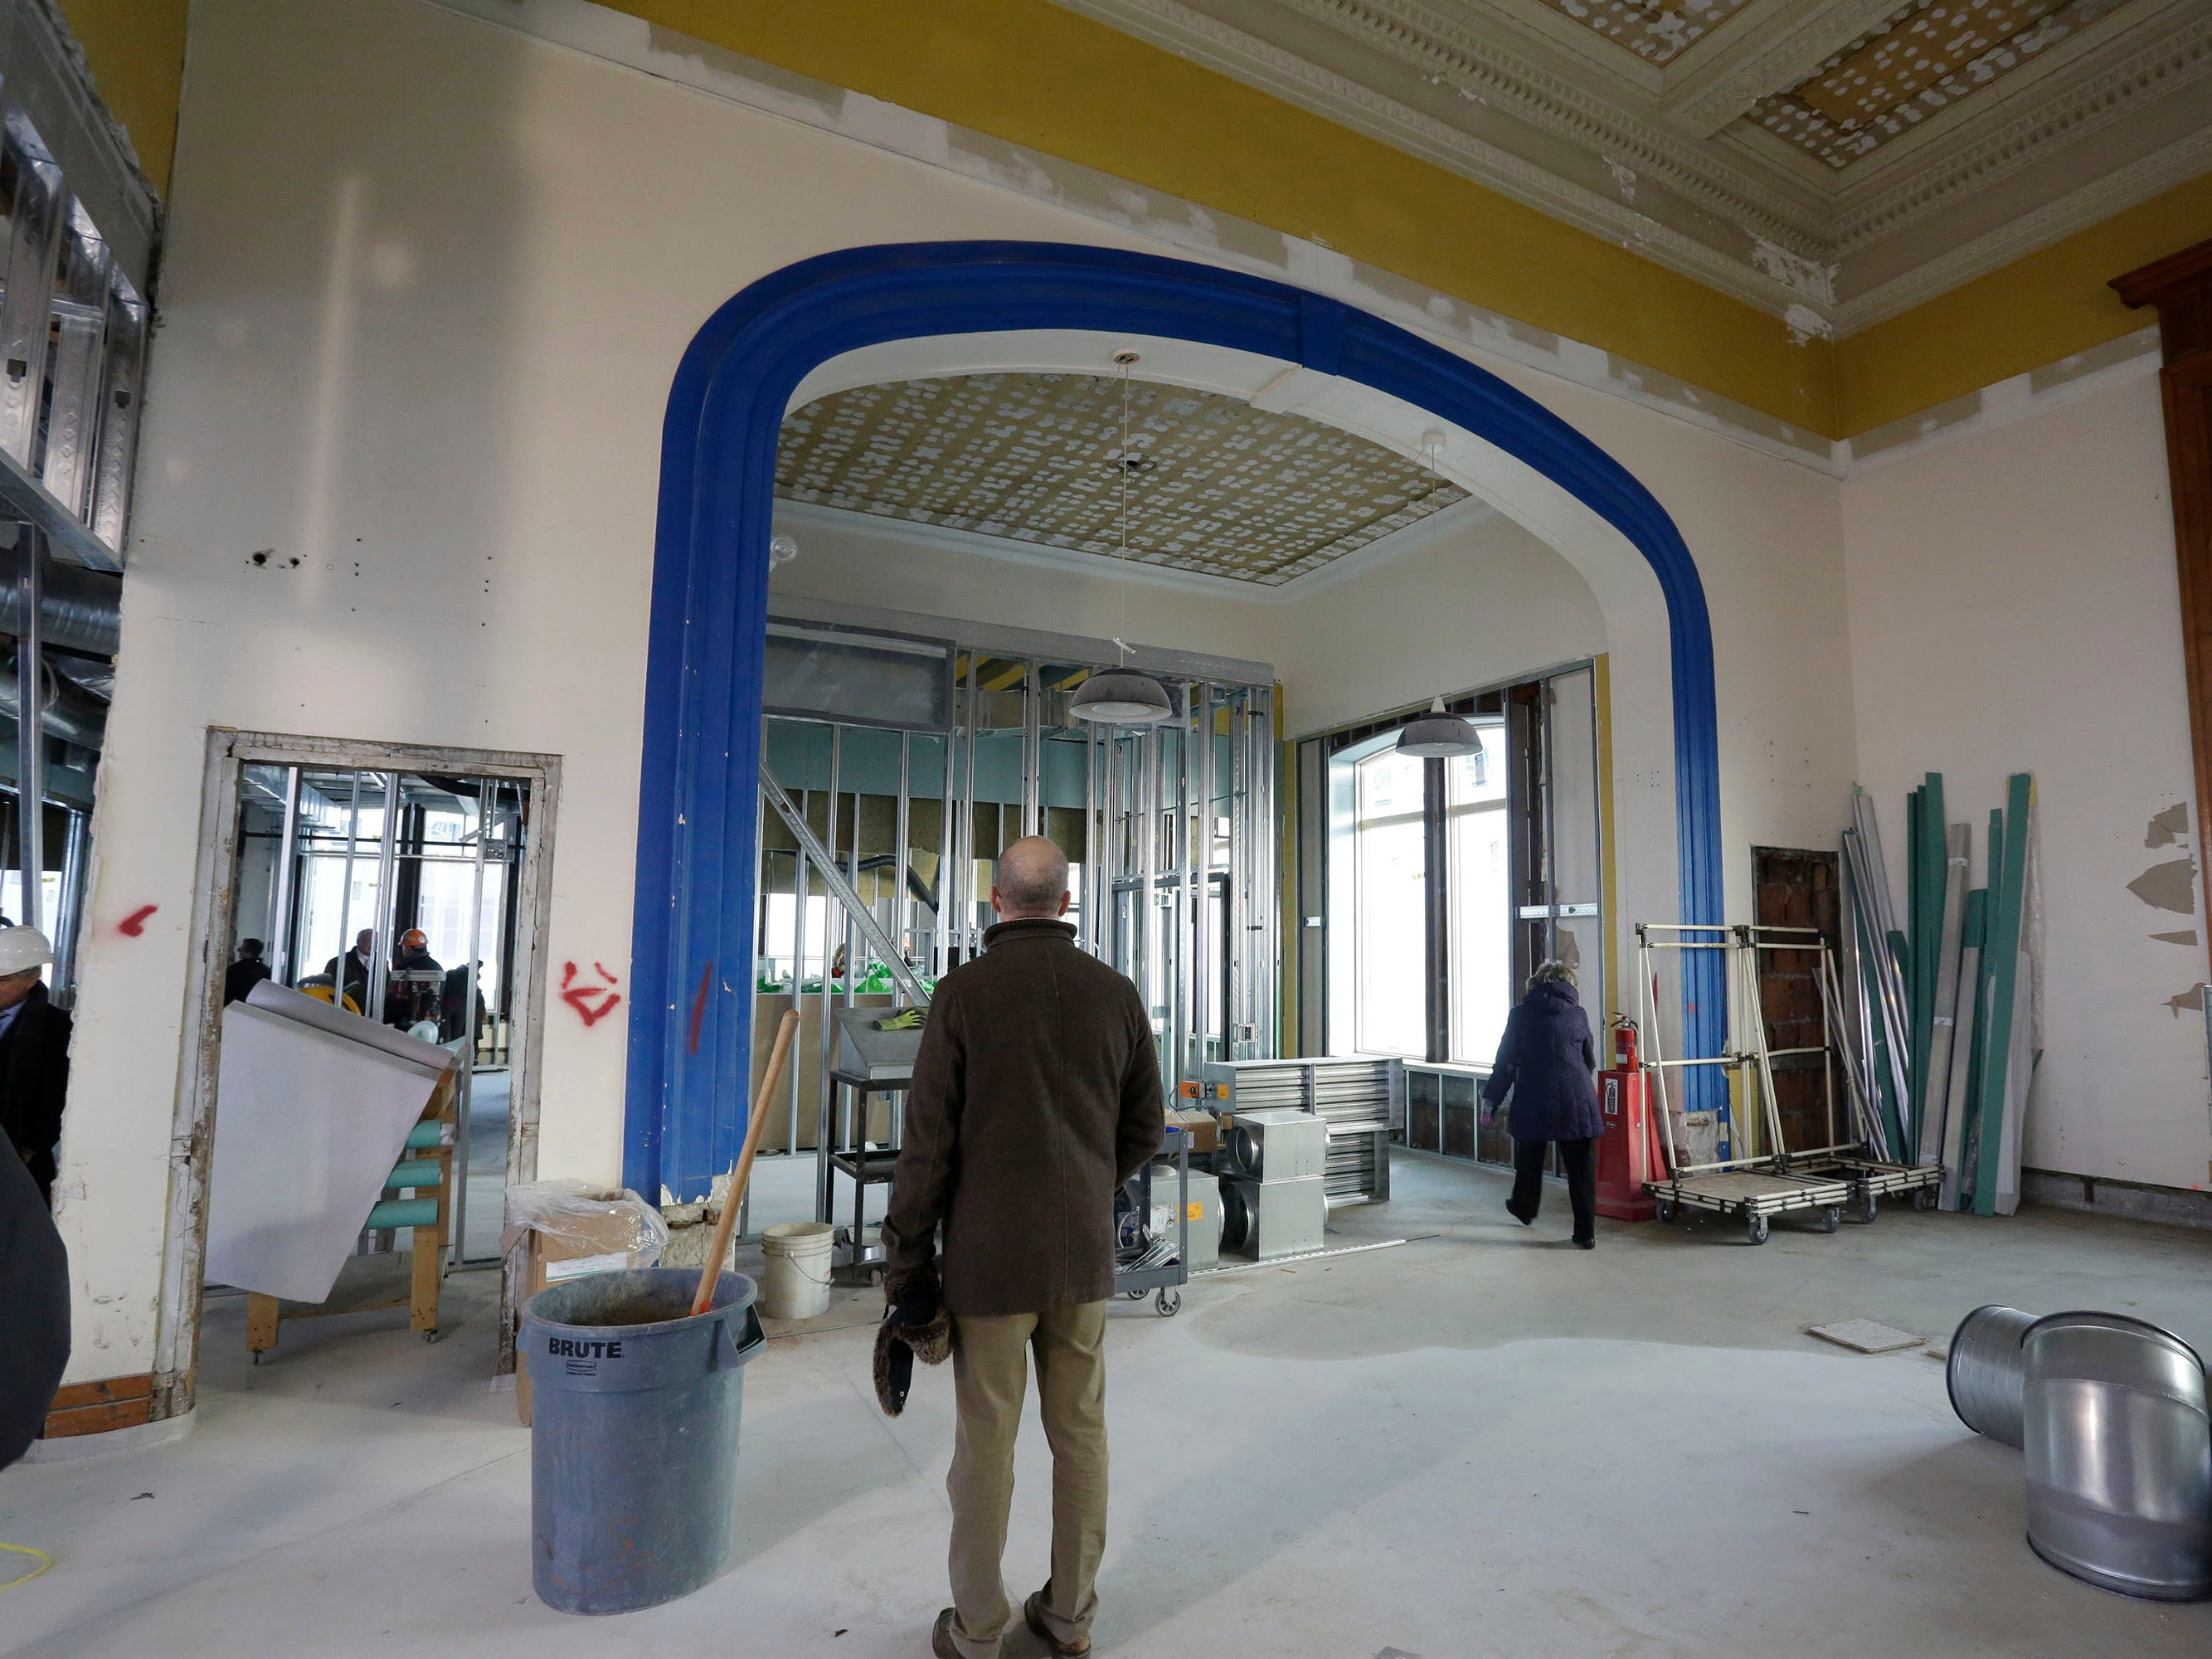 A view inside the Sheboygan City Hall council chambers during a tour of the construction progress, Wednesday, December 5, 2018, in Sheboygan, Wis. The facility is undergoing renovated that is budgeted for 10.5 million dollars.